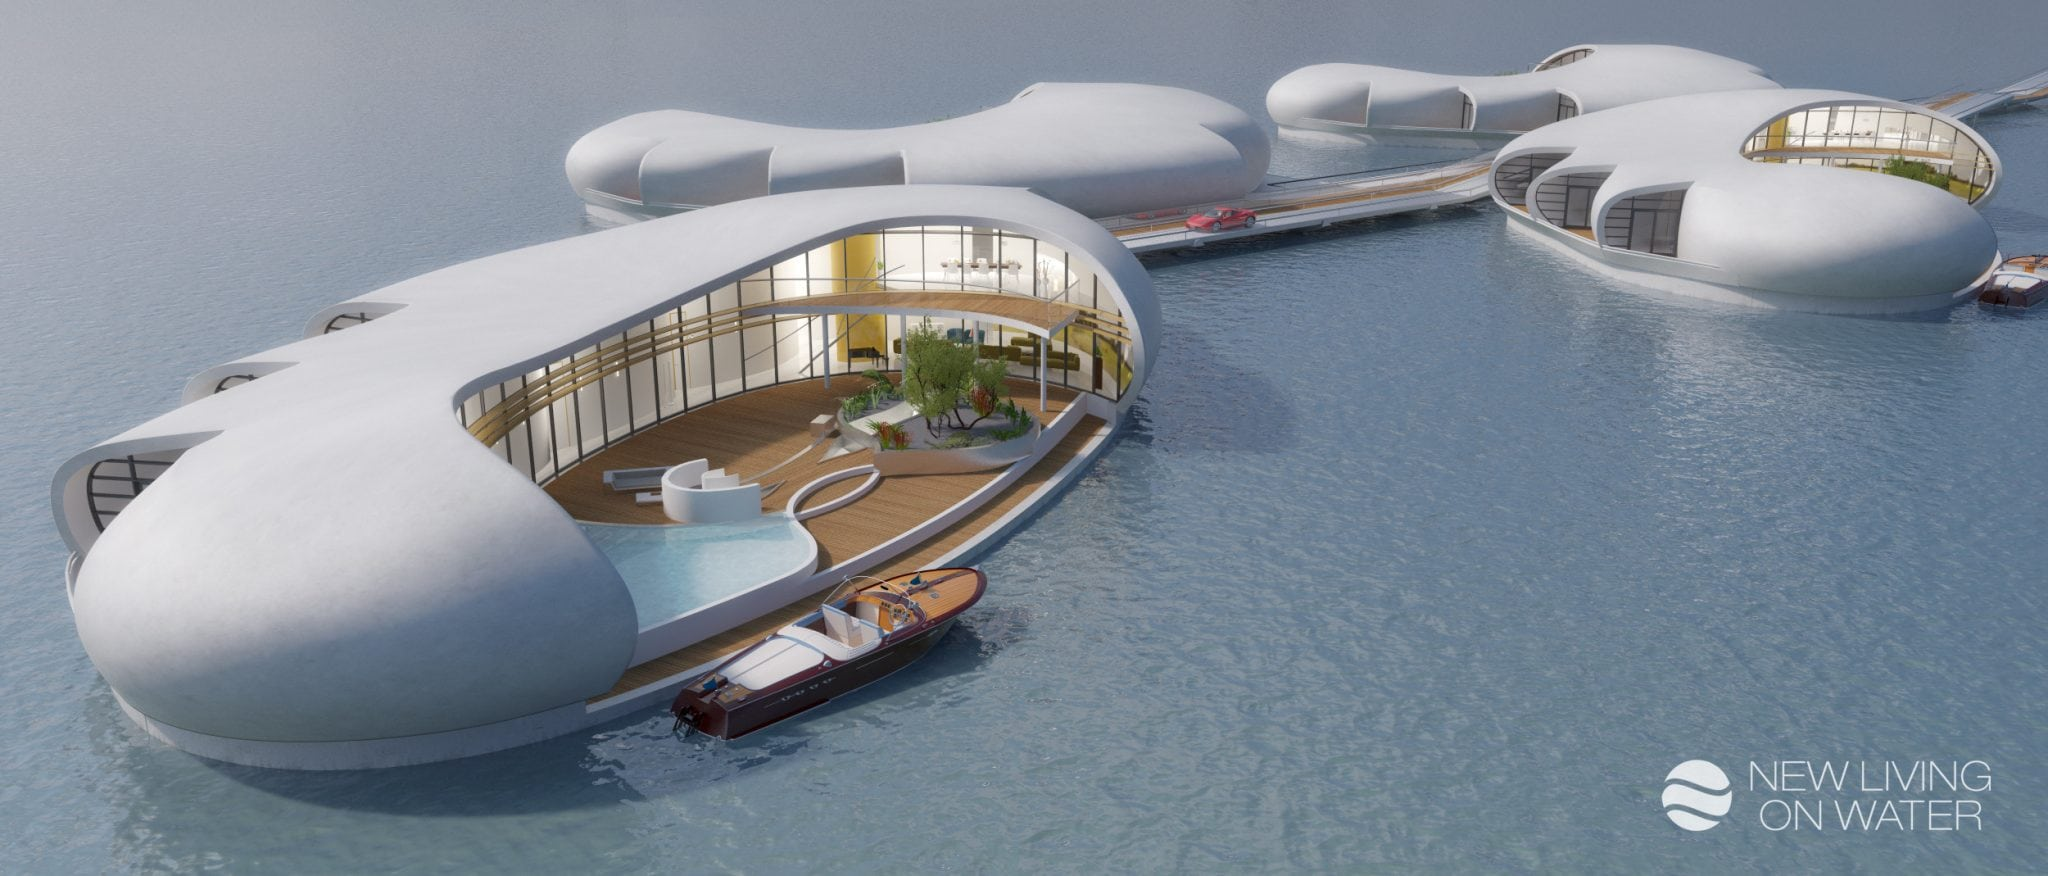 New Living on Water_Floating residences_Connected units